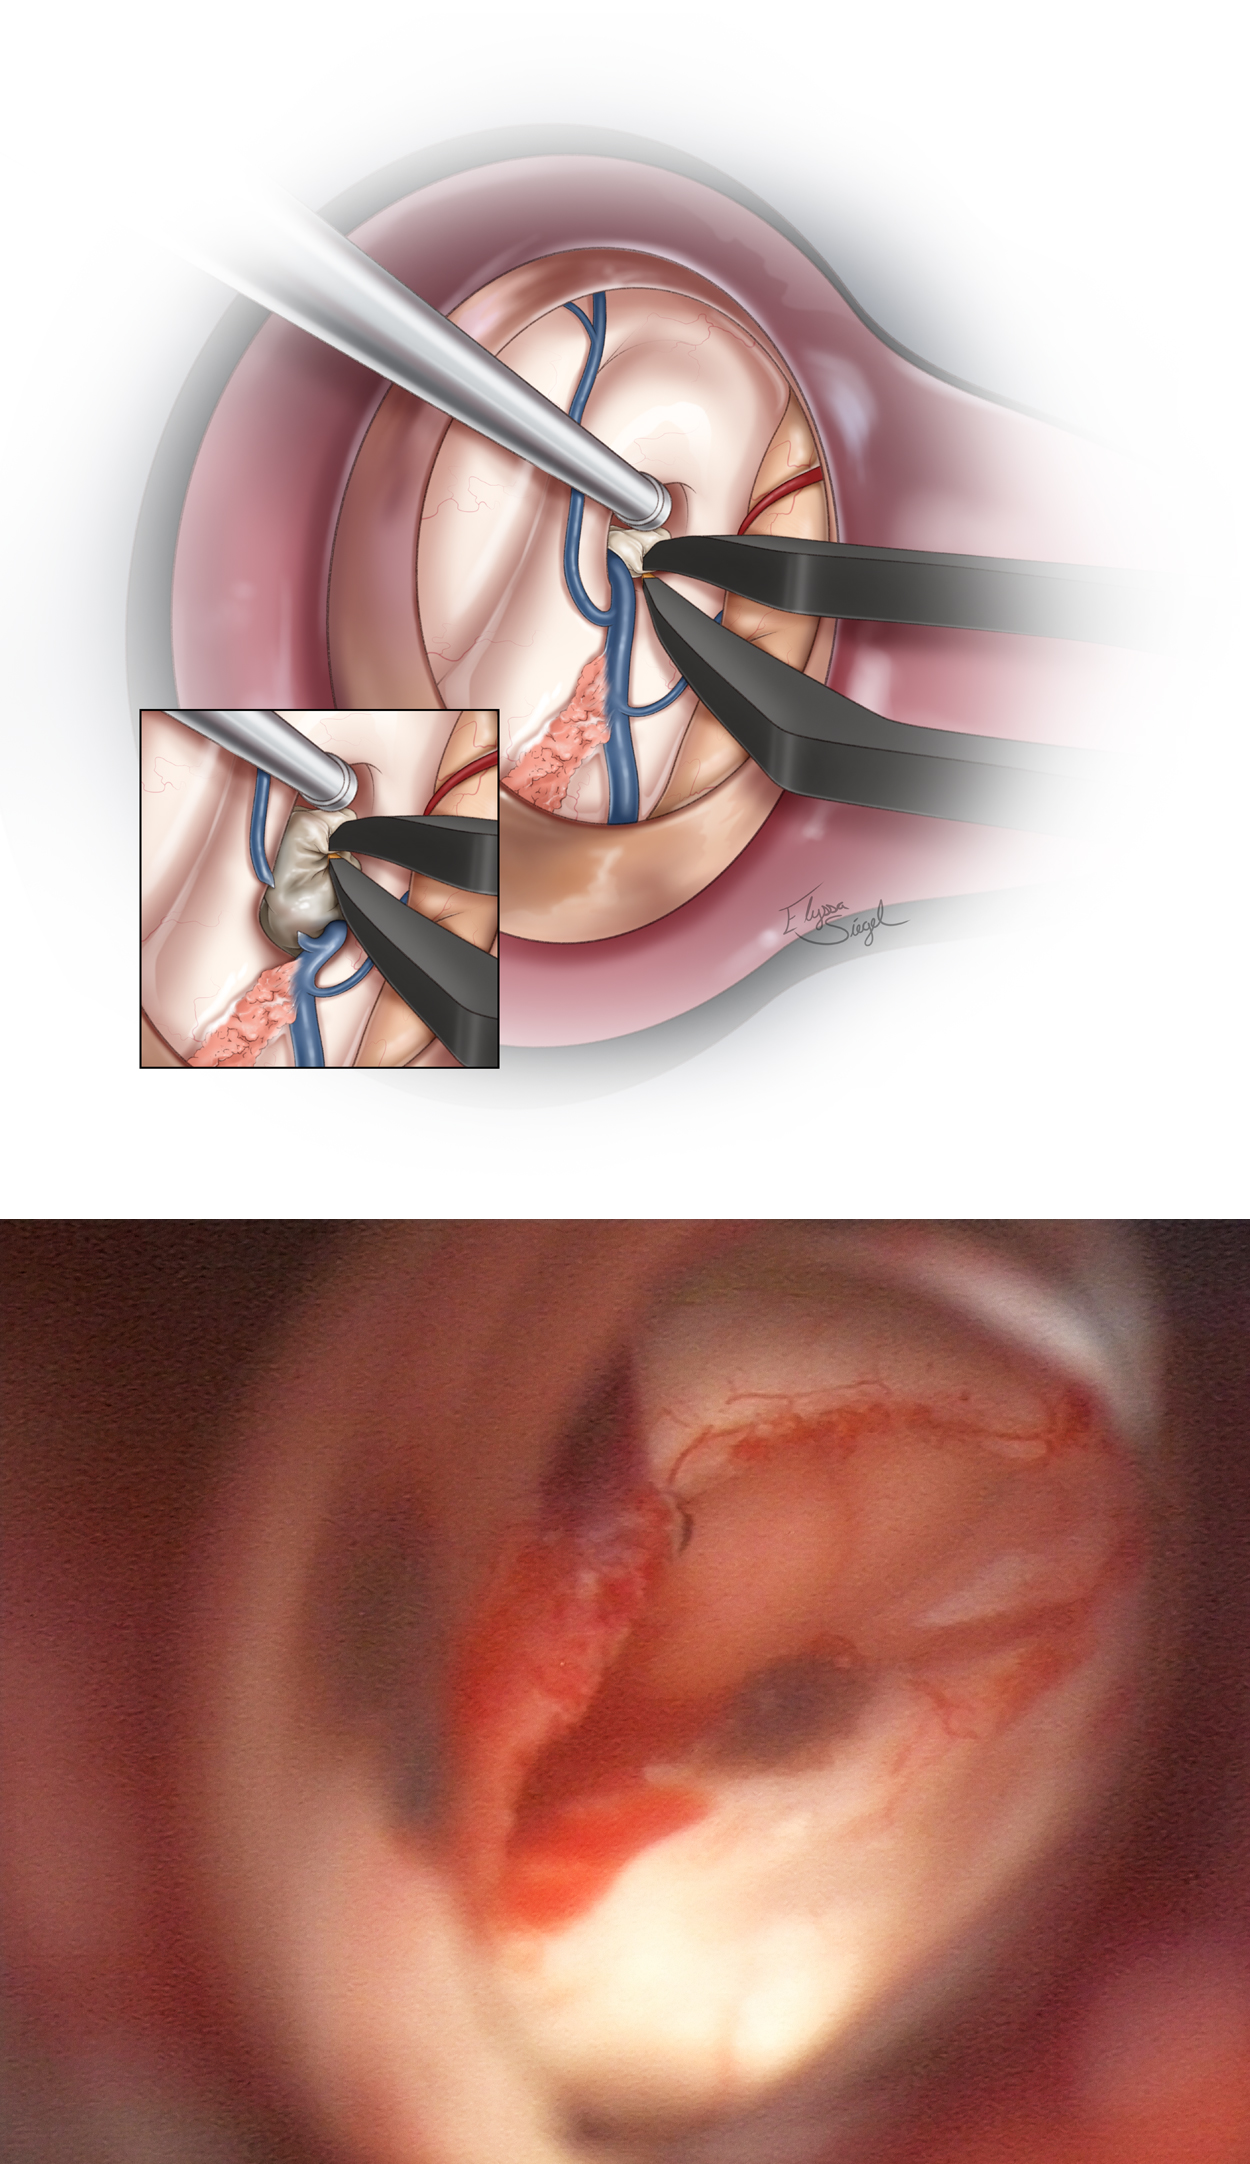 Figure 5: The cyst is drained and removed using standard techniques. If the cyst is large, the foramen may be enlarged via transection of the septal vein as it joins the thalamostriate vein at the posterior edge of the foramen (upper image, inset). The final view of the operative field after transection of the septal vein and removal of the cyst is shown (lower photo).